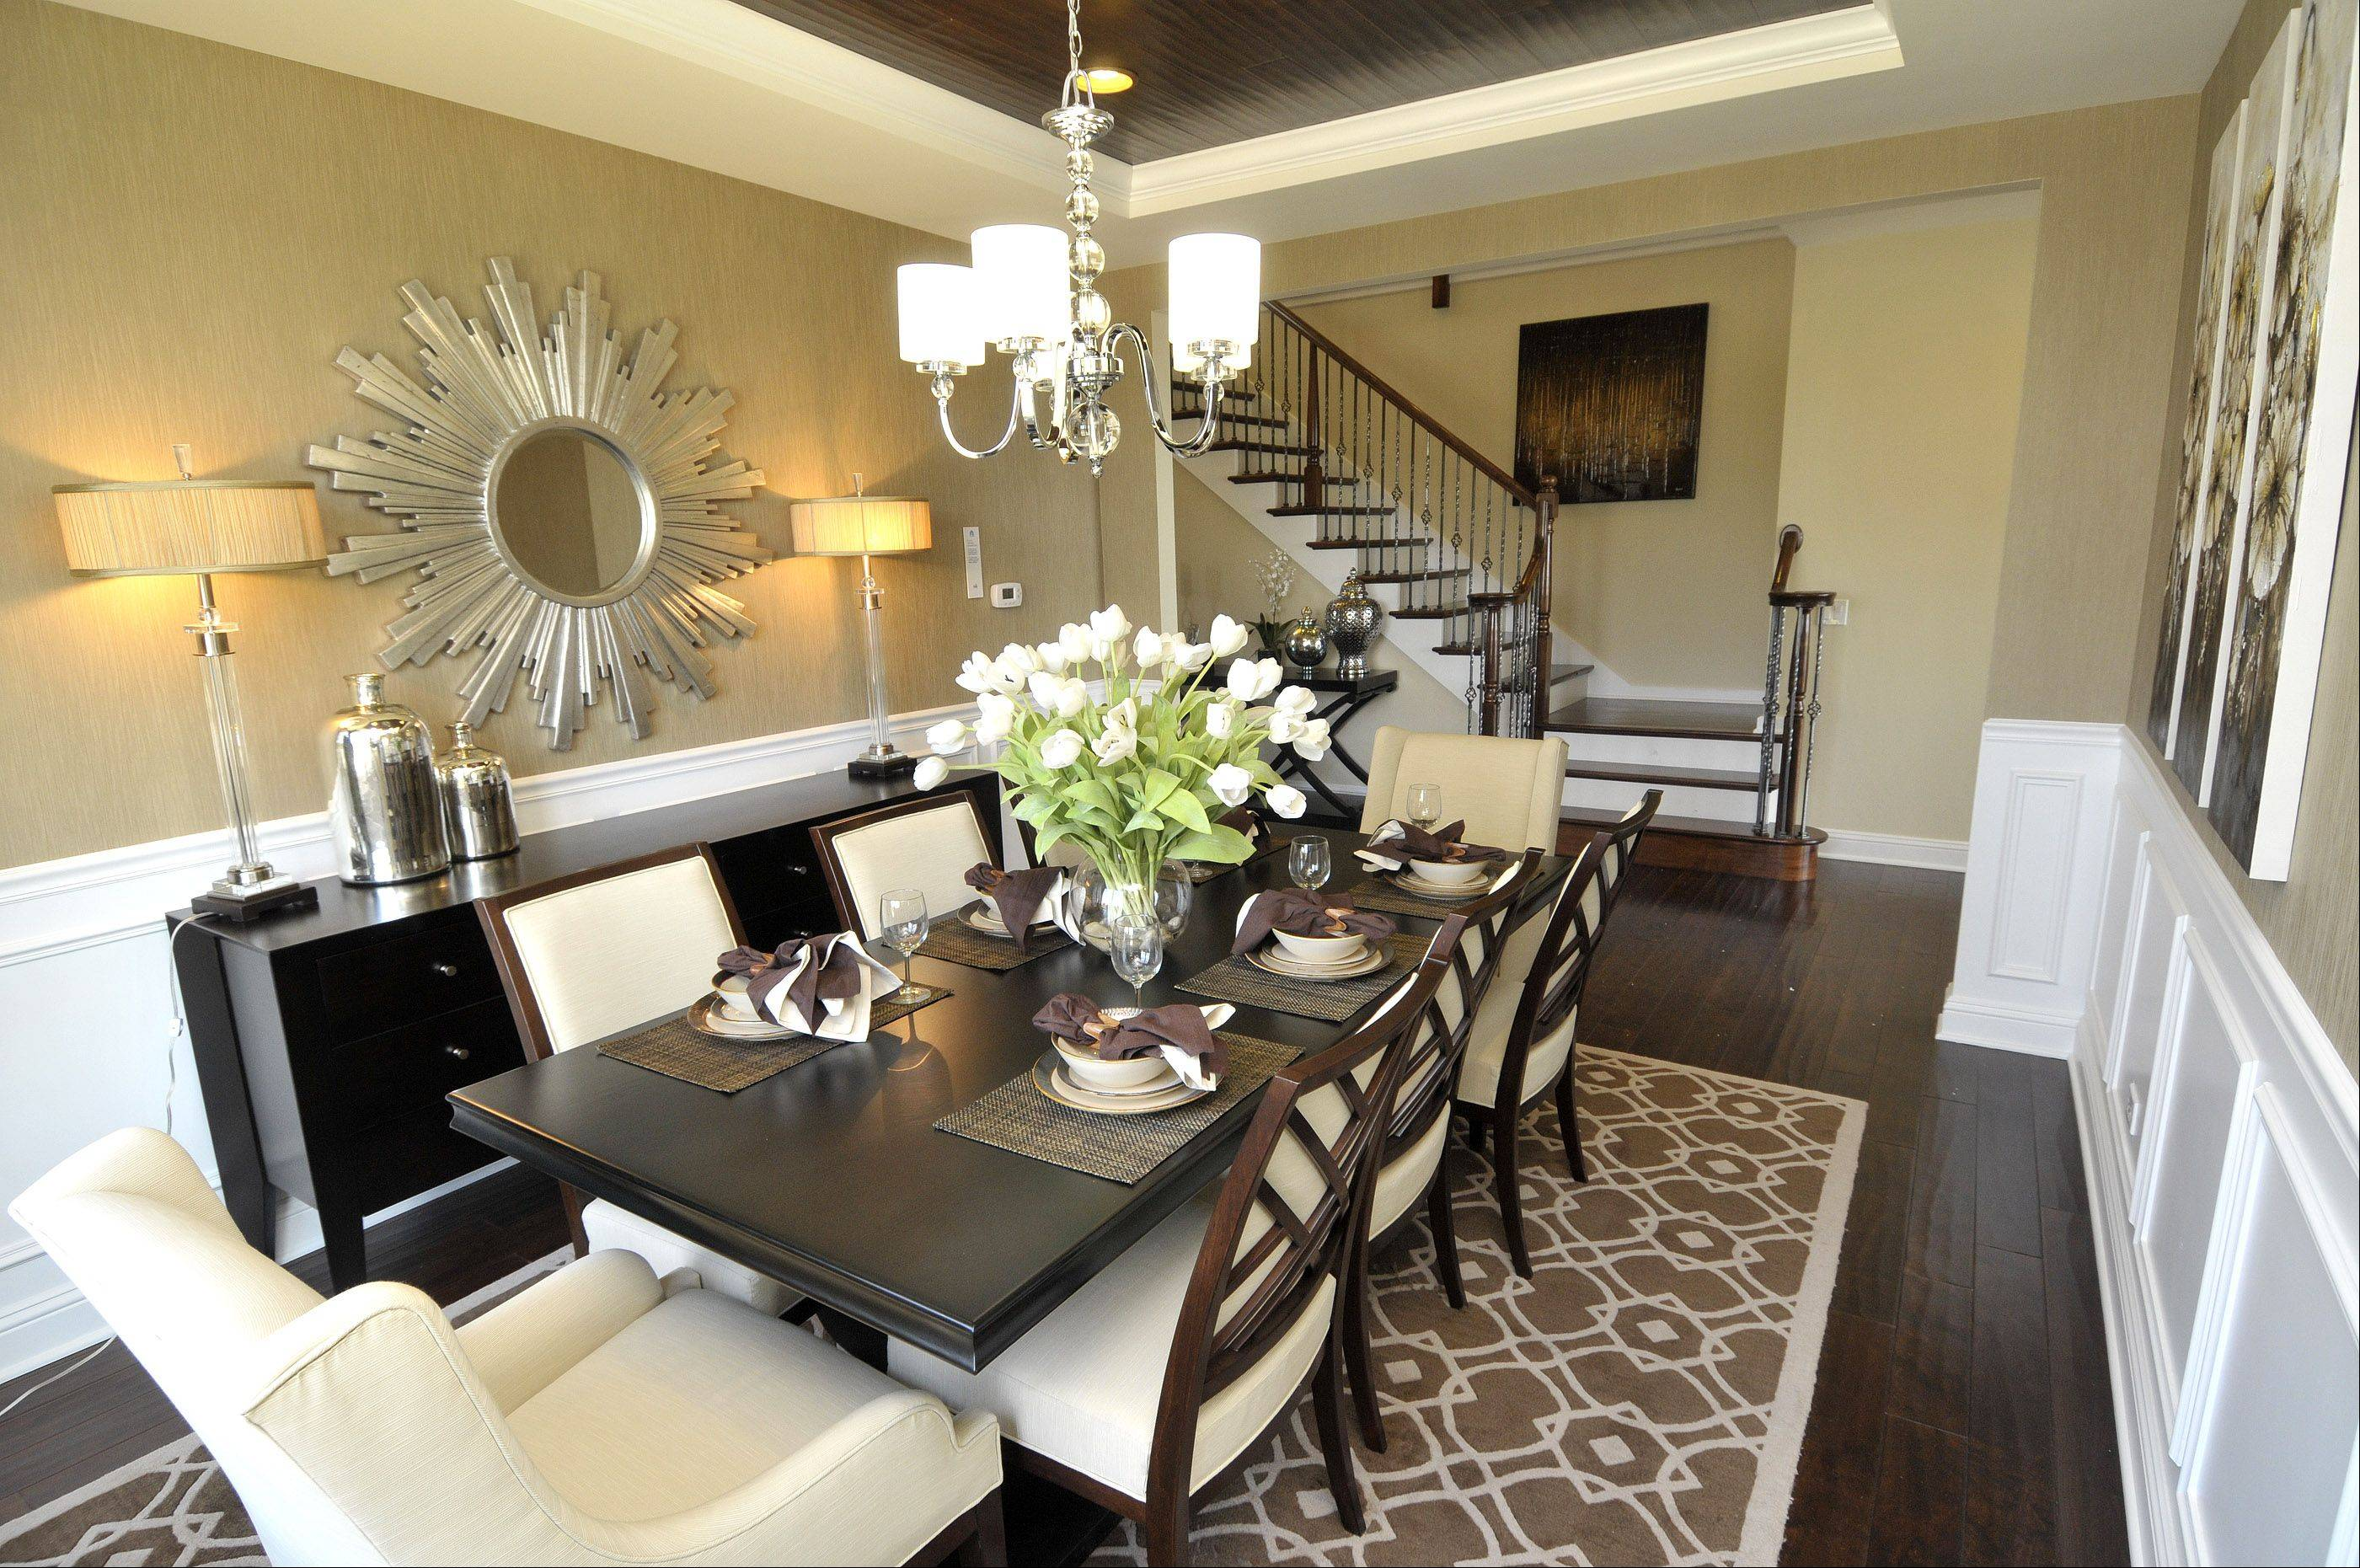 Model home pictures of pulte.